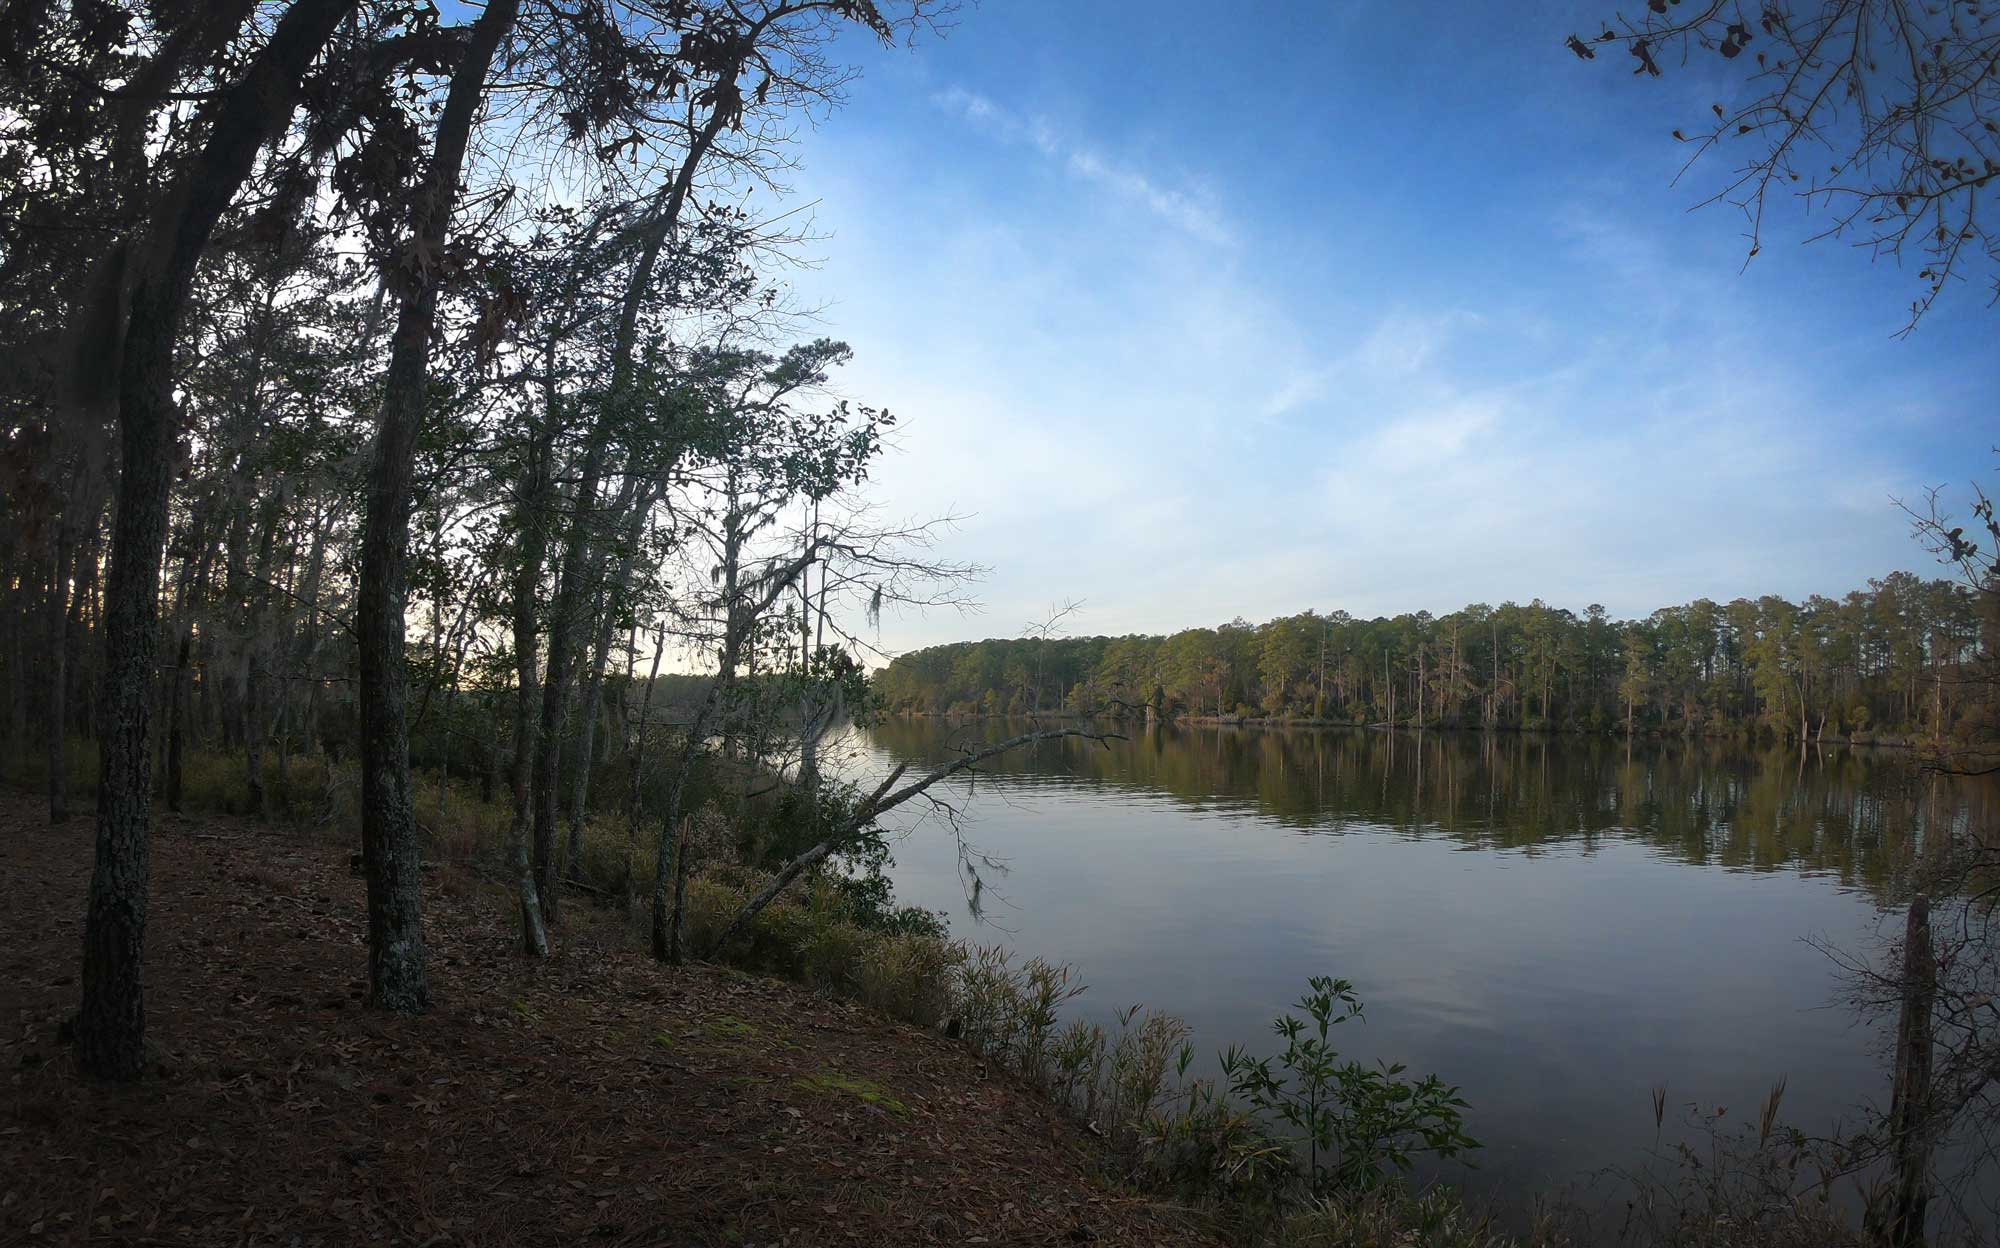 View of Goose Creek from the Ivey Gut Trail in Goose Creek State Park, North Carolina